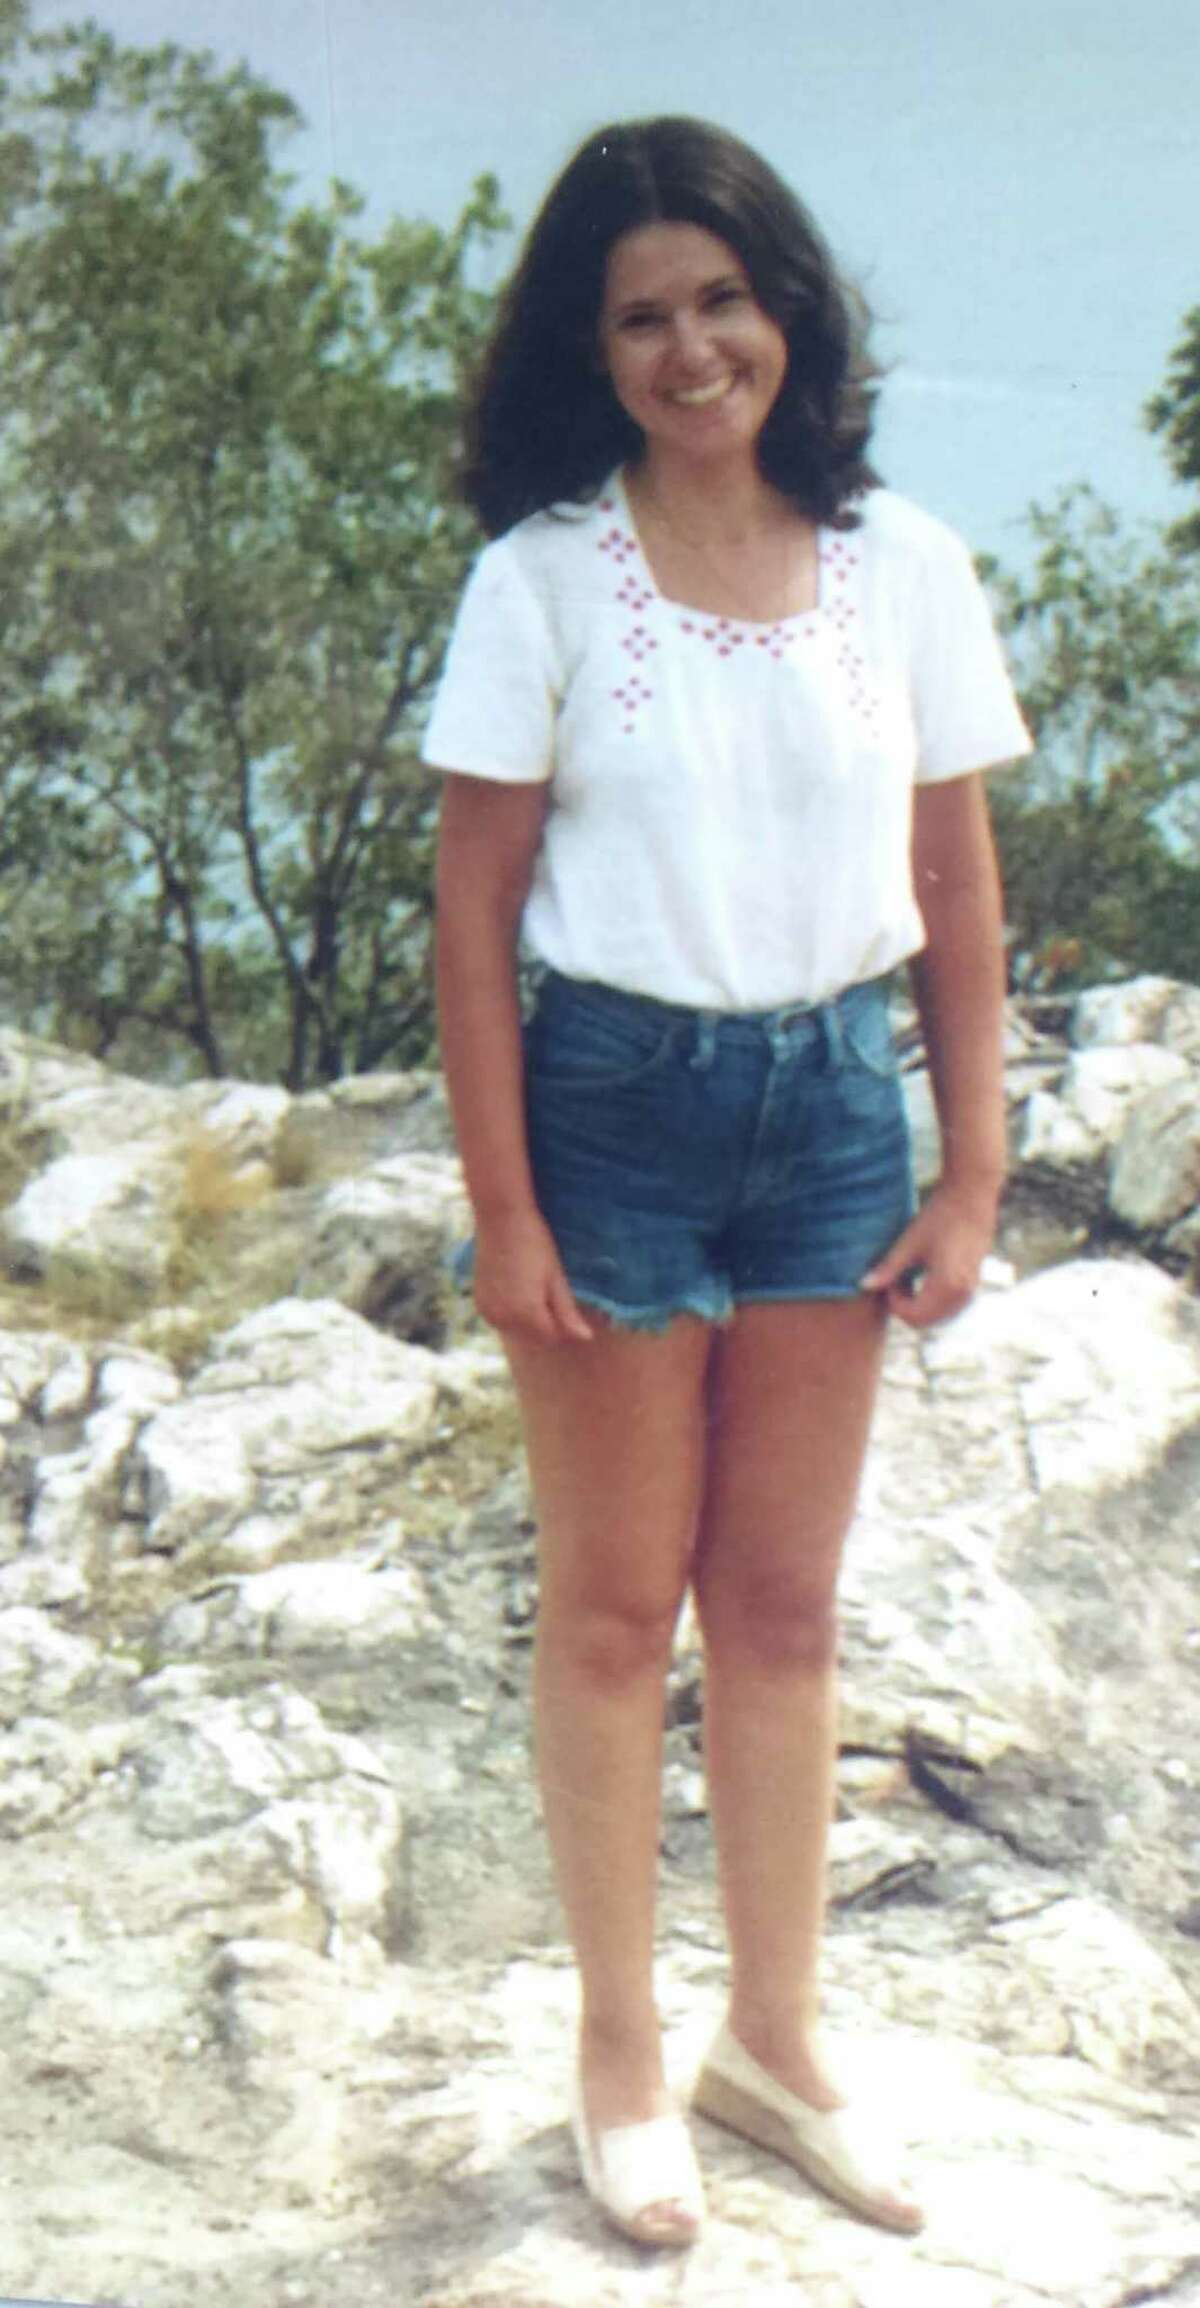 Former New Milford resident Karen Smyrski-Smith, who has Autosomal Dominant Polycystic Kidney Disease (ADPKD), an inherited progressive disorder in which cysts develop in the kidneys, is hopeful a living donor with a kidney match will soon be found. She is shown above at age 29 when she was diagnosed with the disease in 1980.